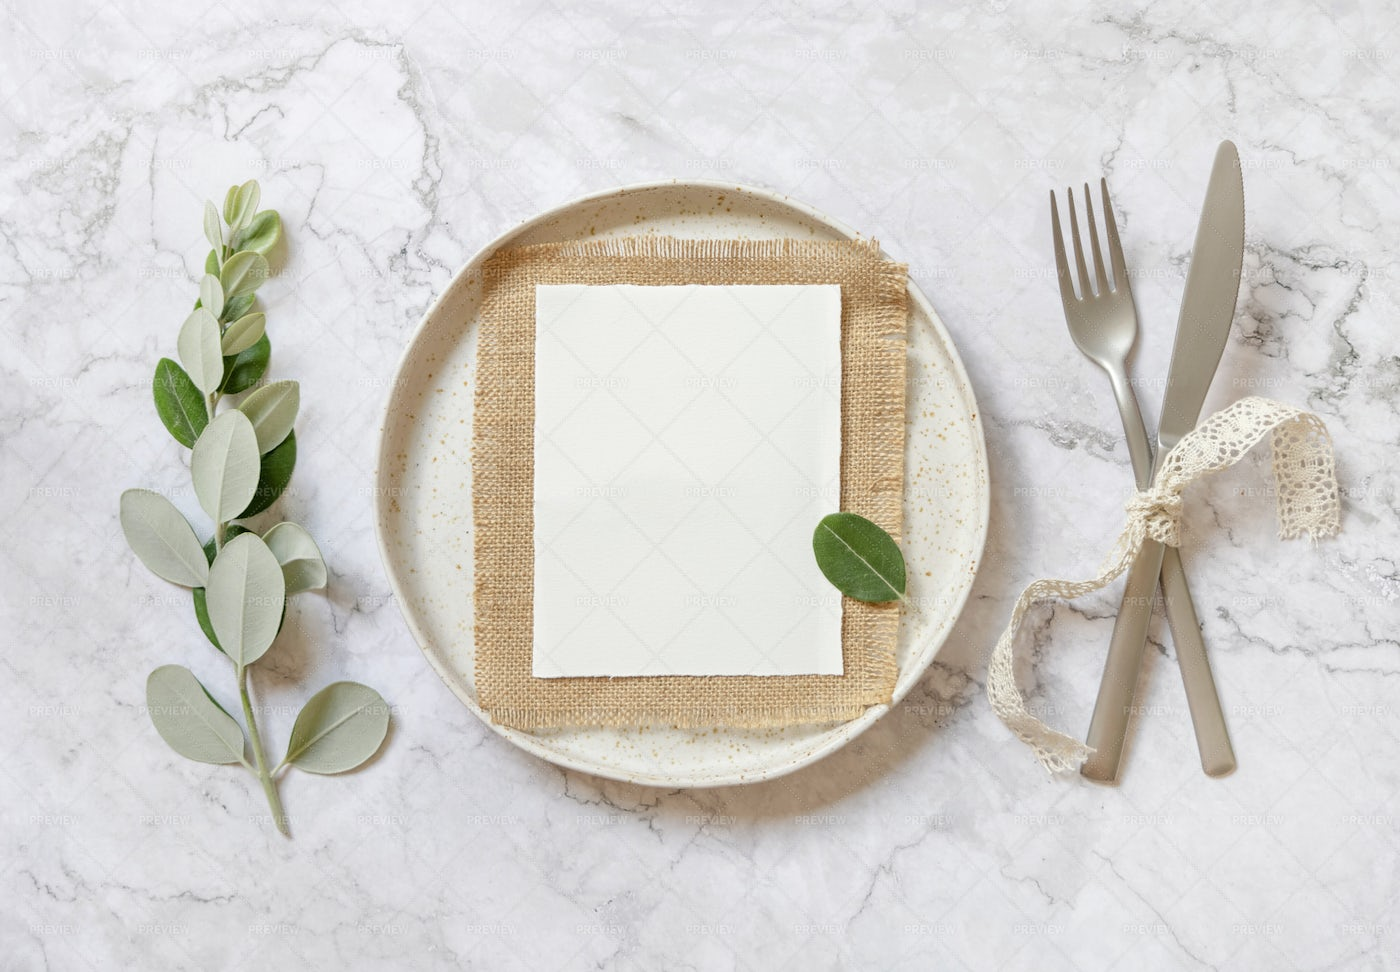 Paper Card On A White Plate: Stock Photos